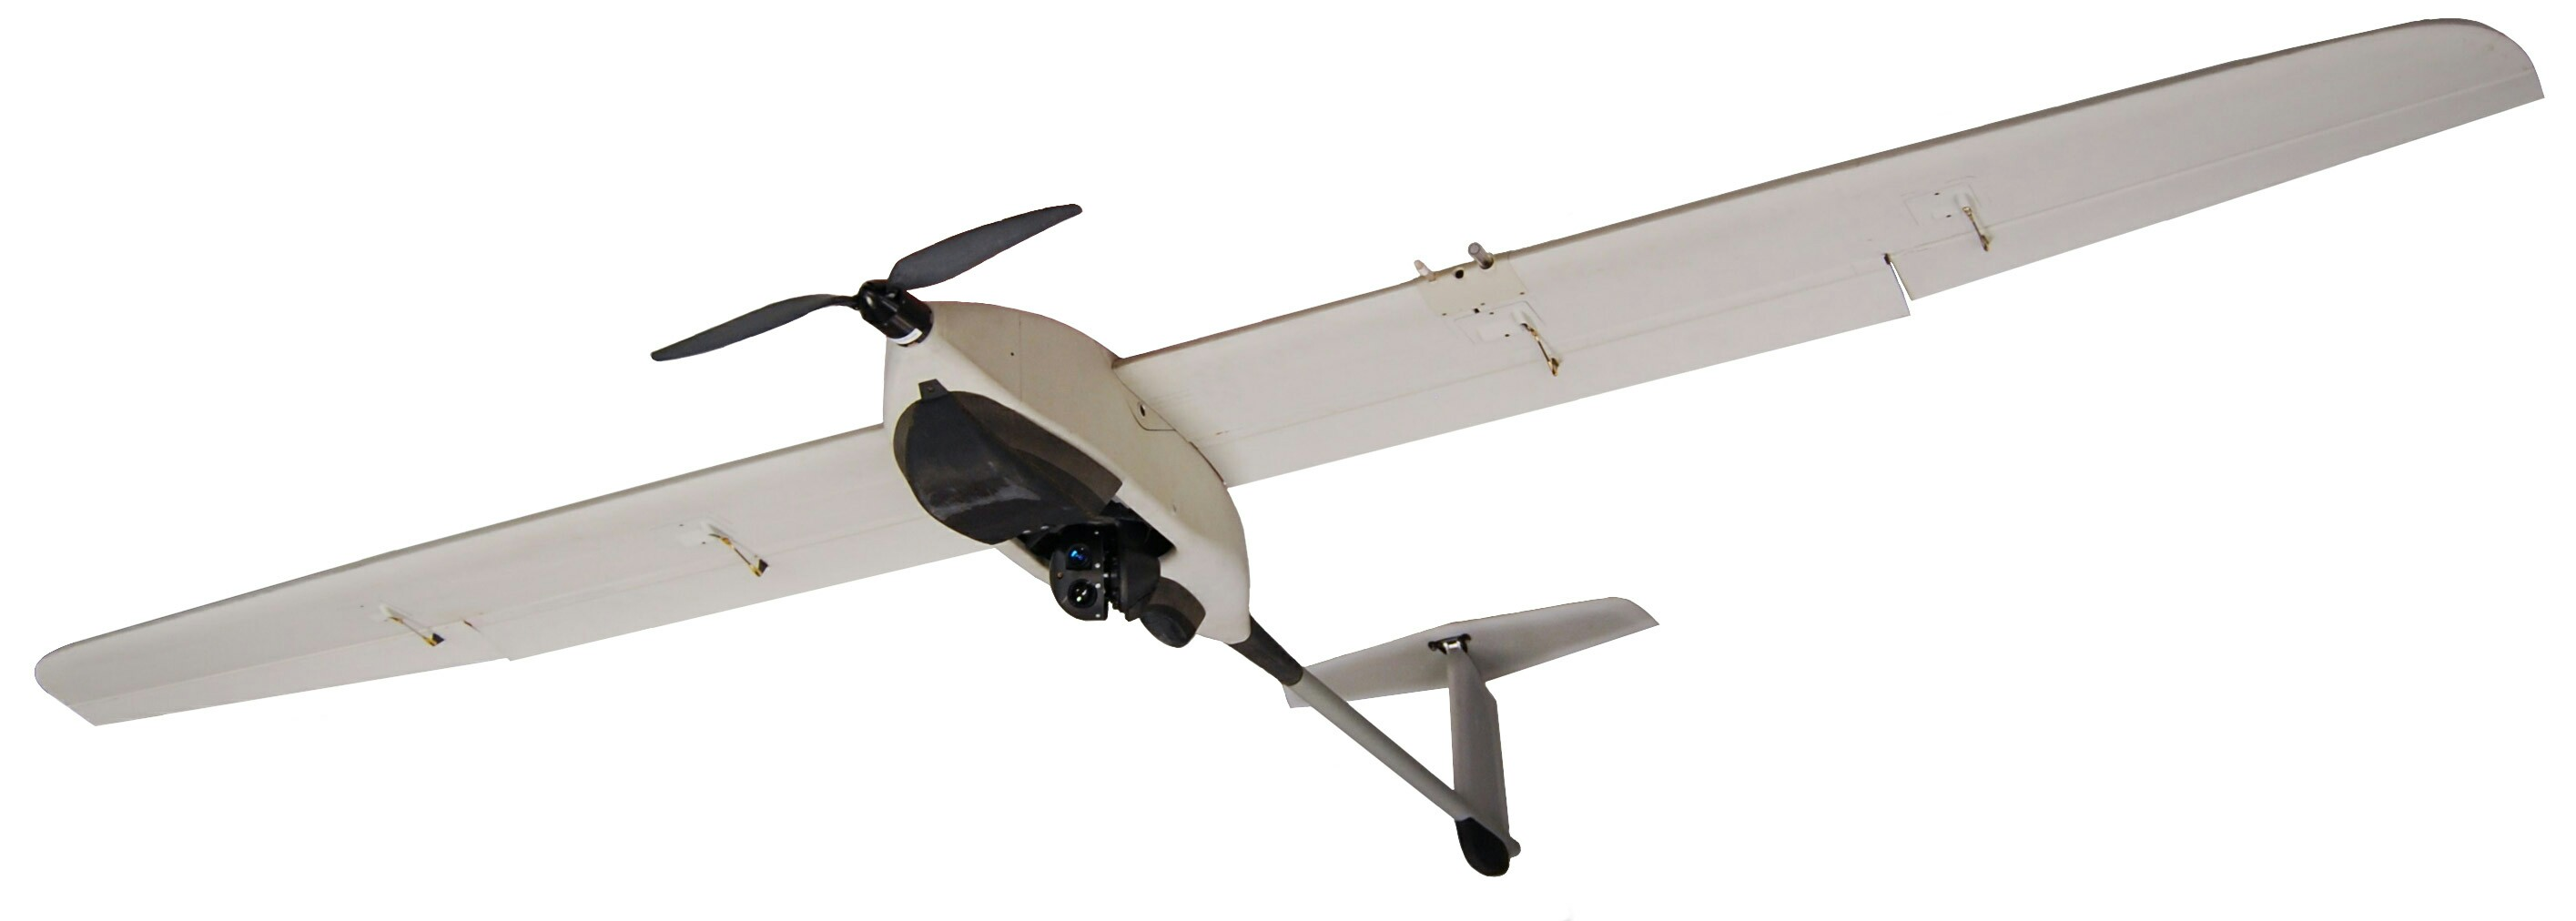 All-weather Capable UAV